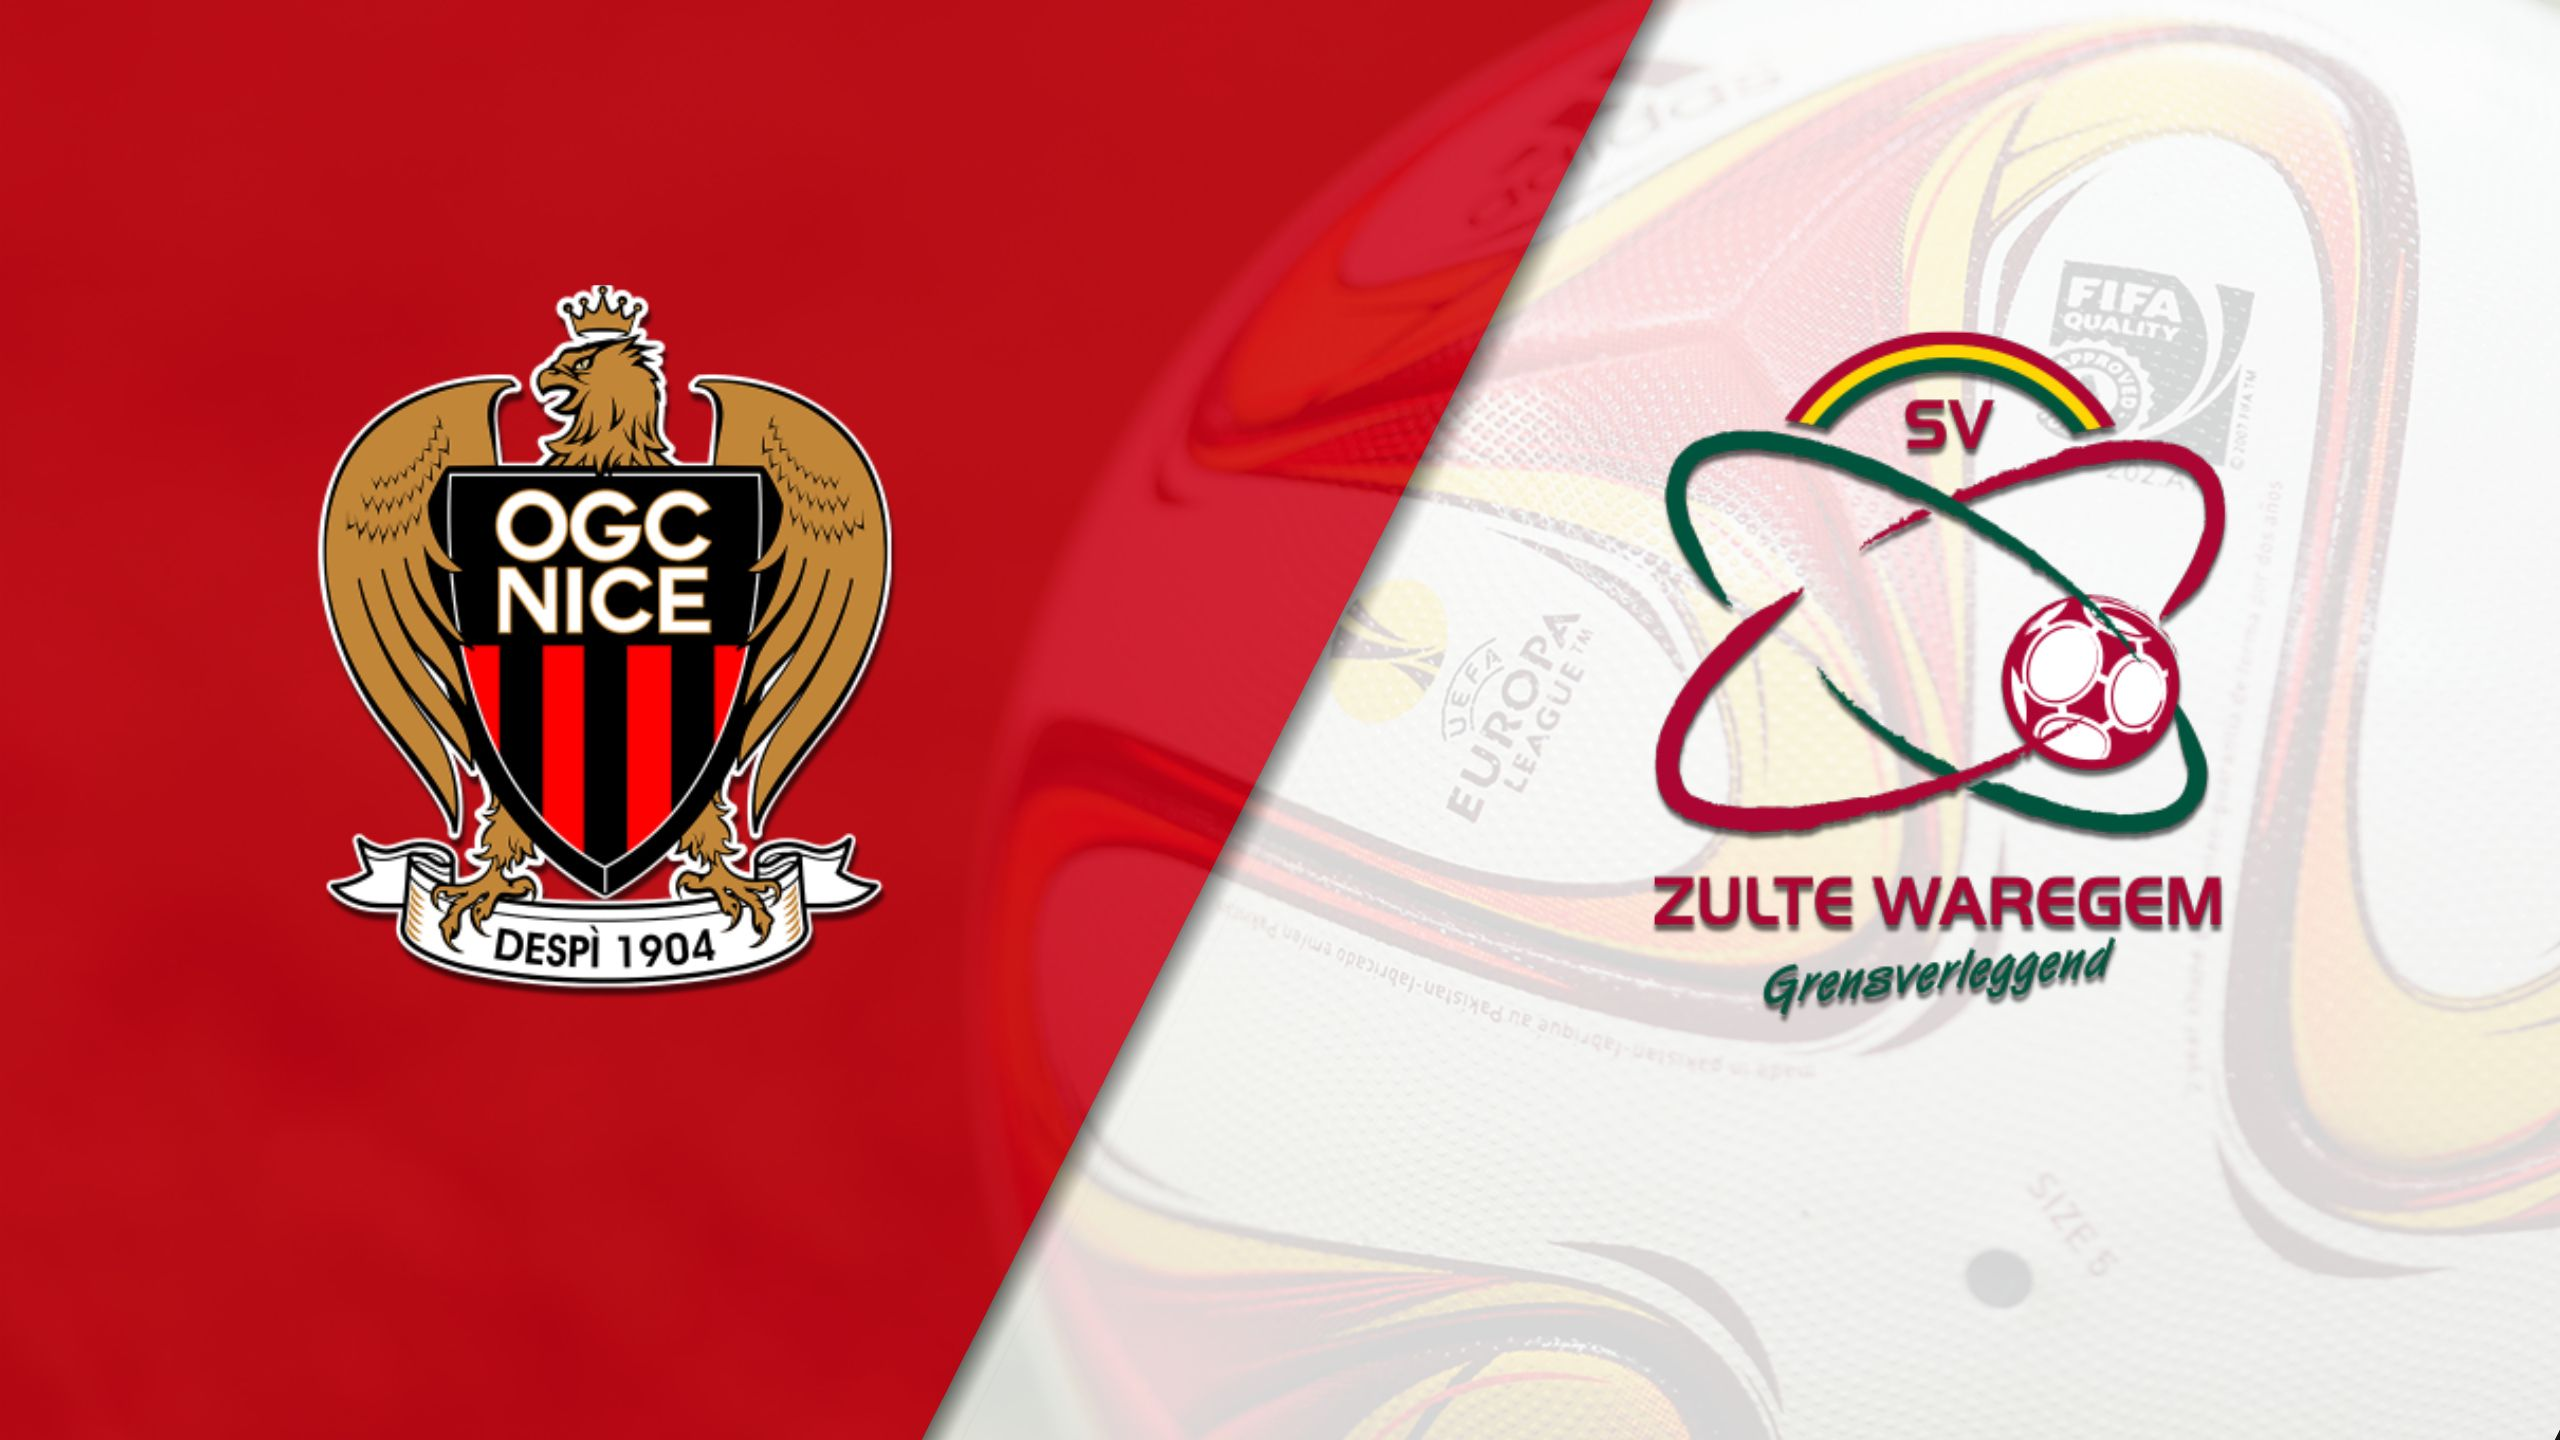 In Spanish - OGC Nice vs. Zulte Waregem (Group Stage #5) (UEFA Europa League)